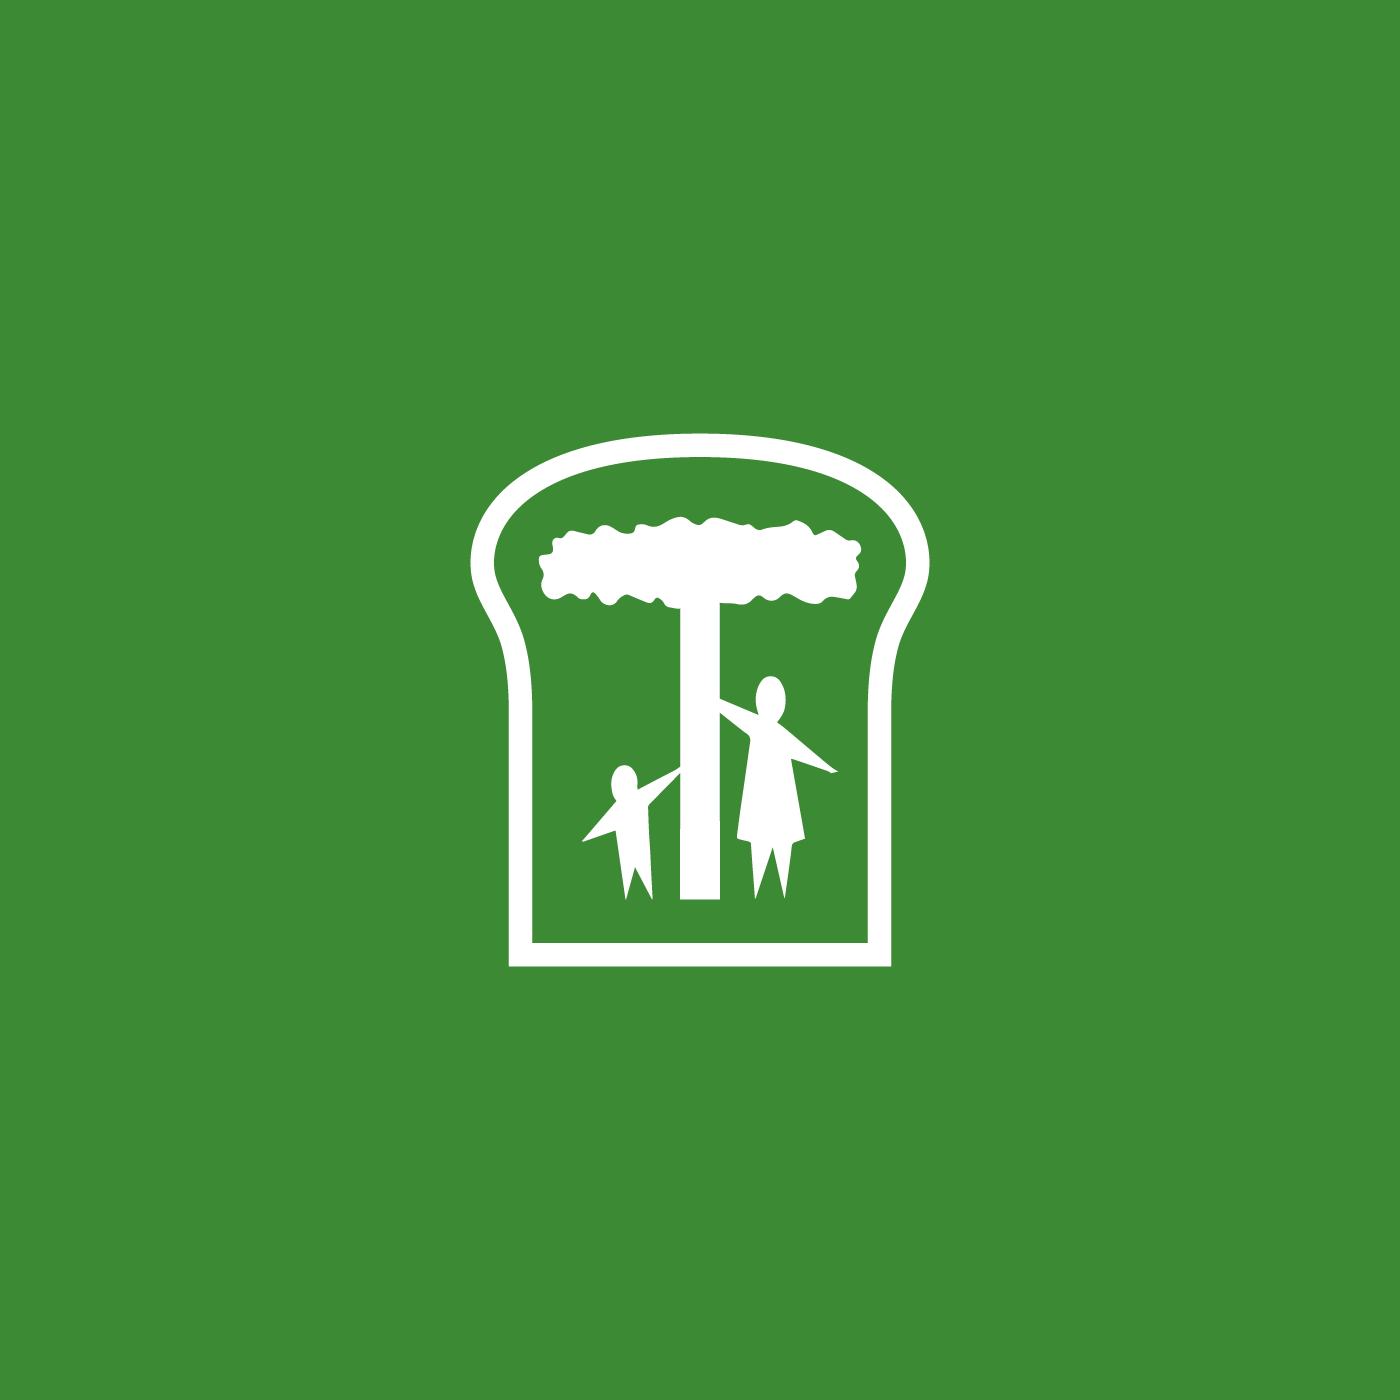 Green and white icon of a slice of bread. Inside, there is a mother and child standing underneath an African acacia tree